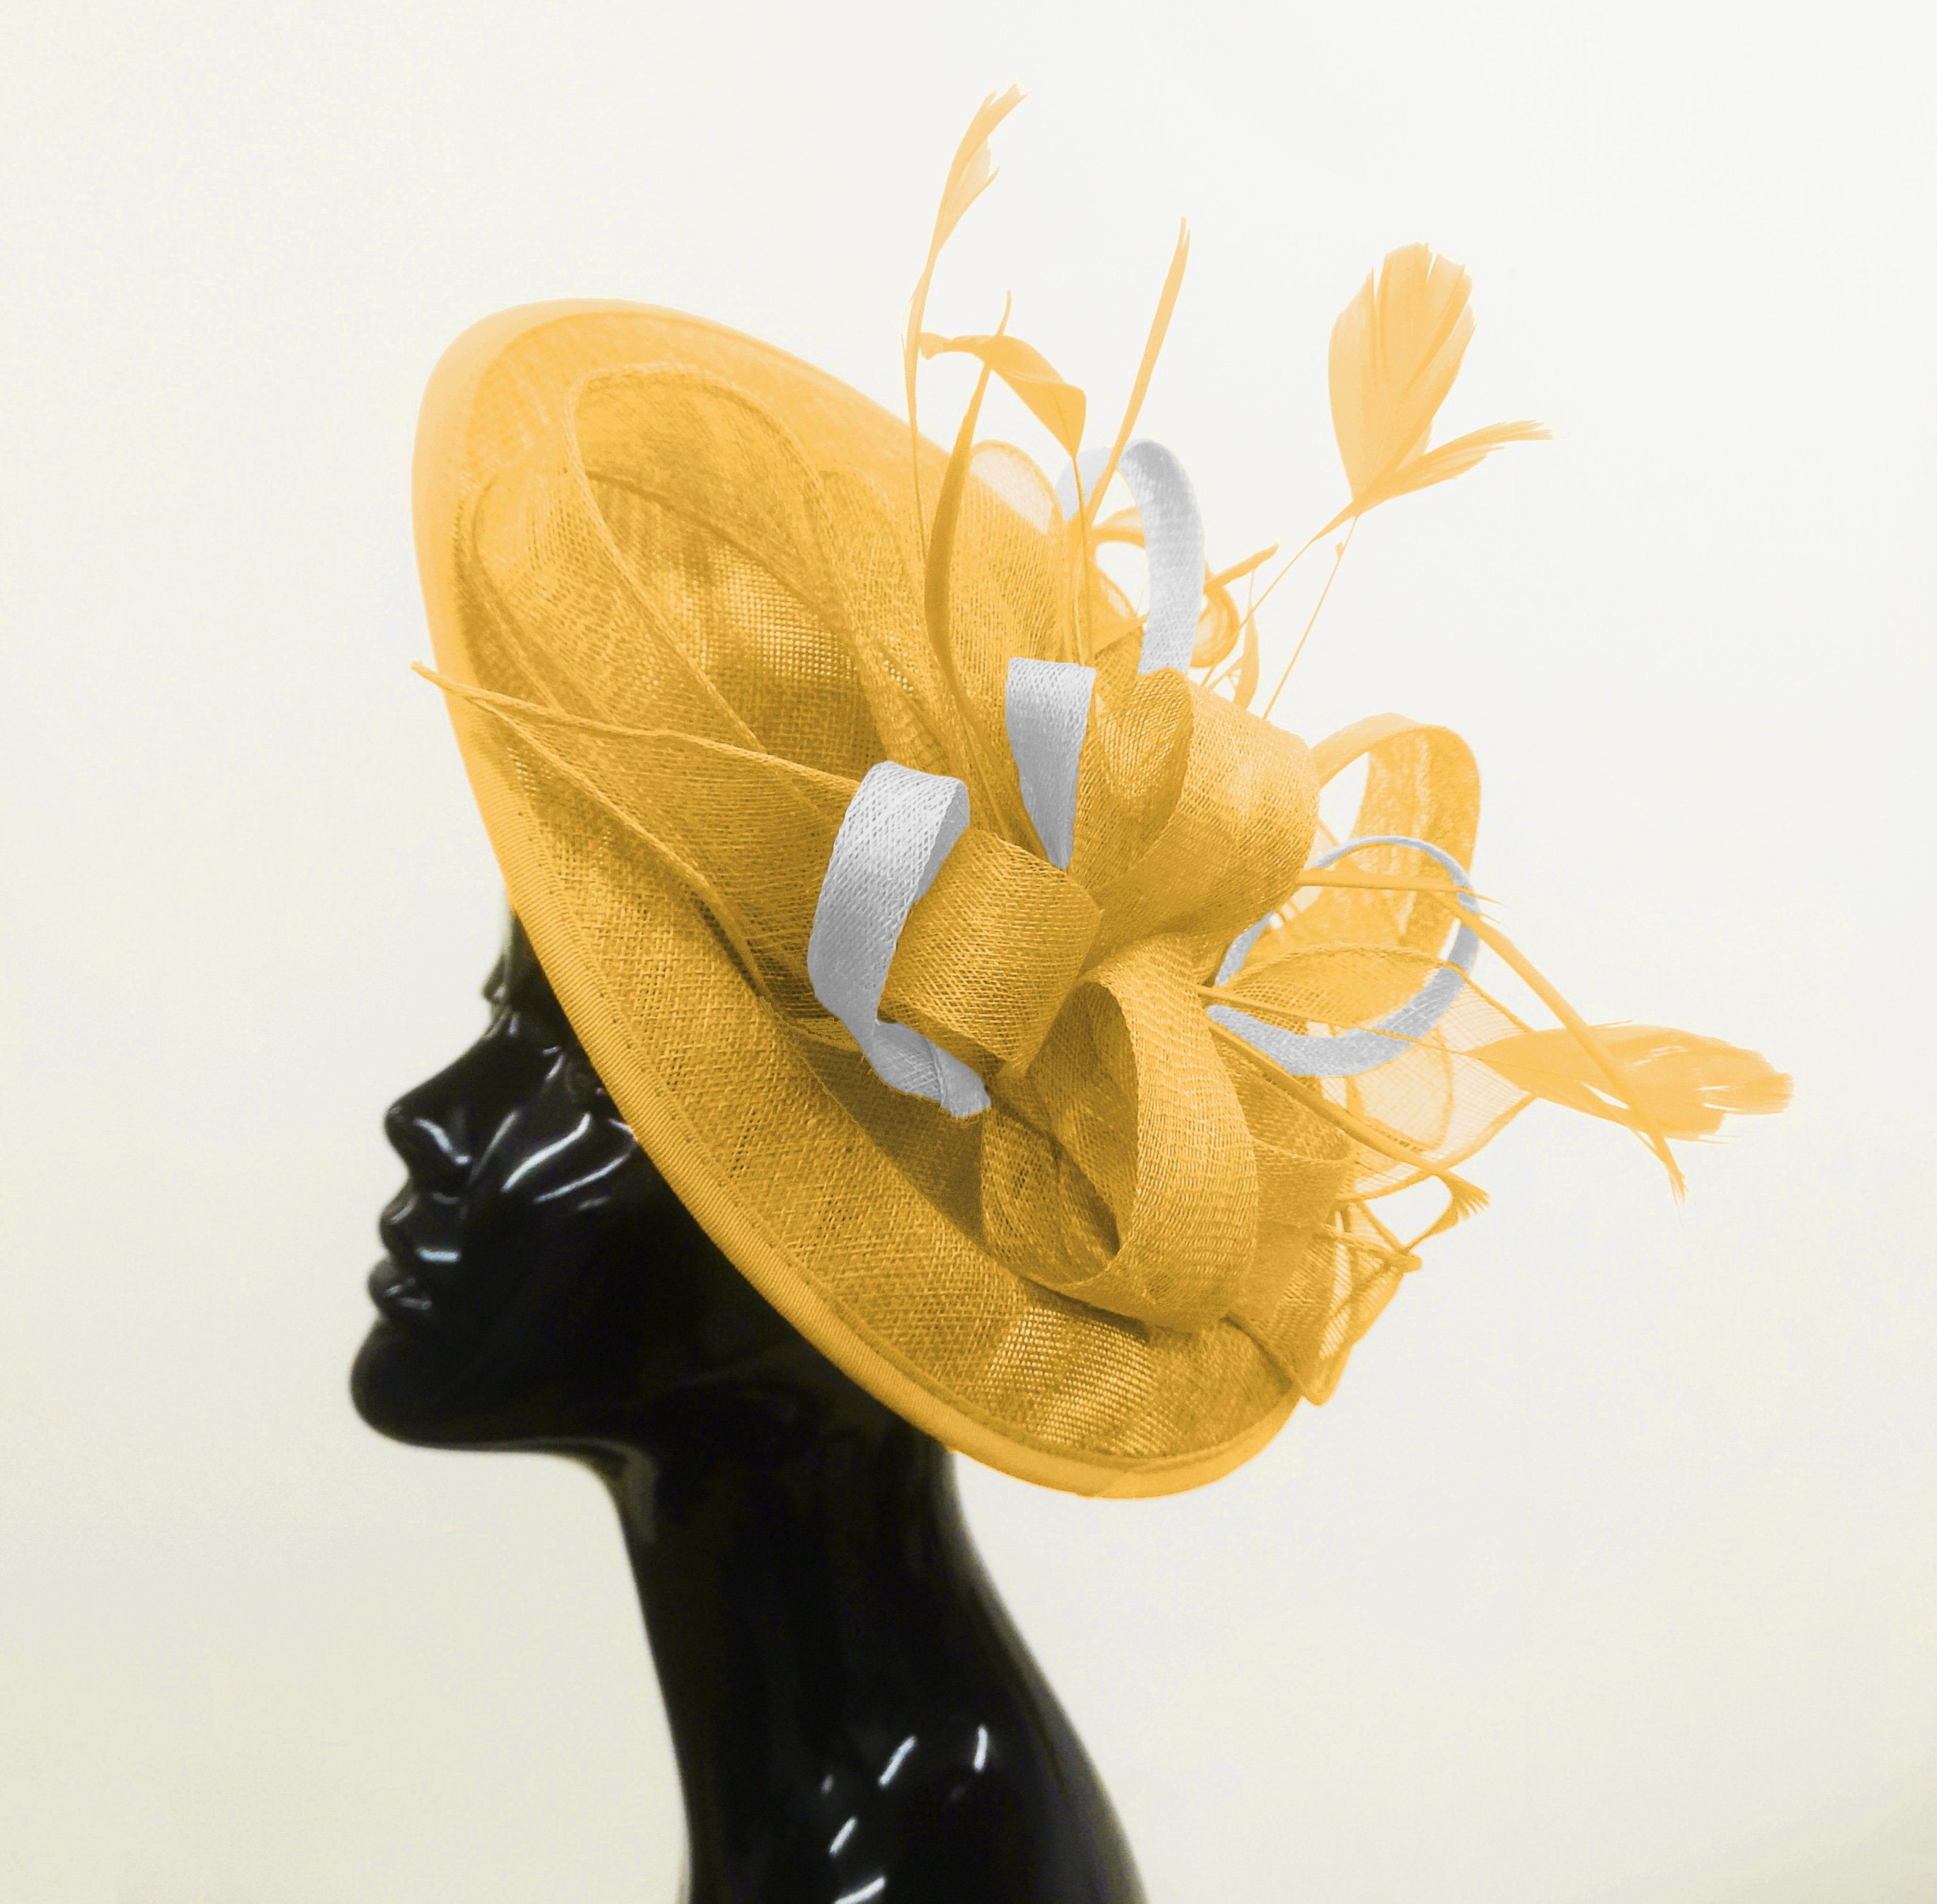 Caprilite Big Saucer Sinamay Gold Mustard & White Mixed Colour Fascinator On Headband